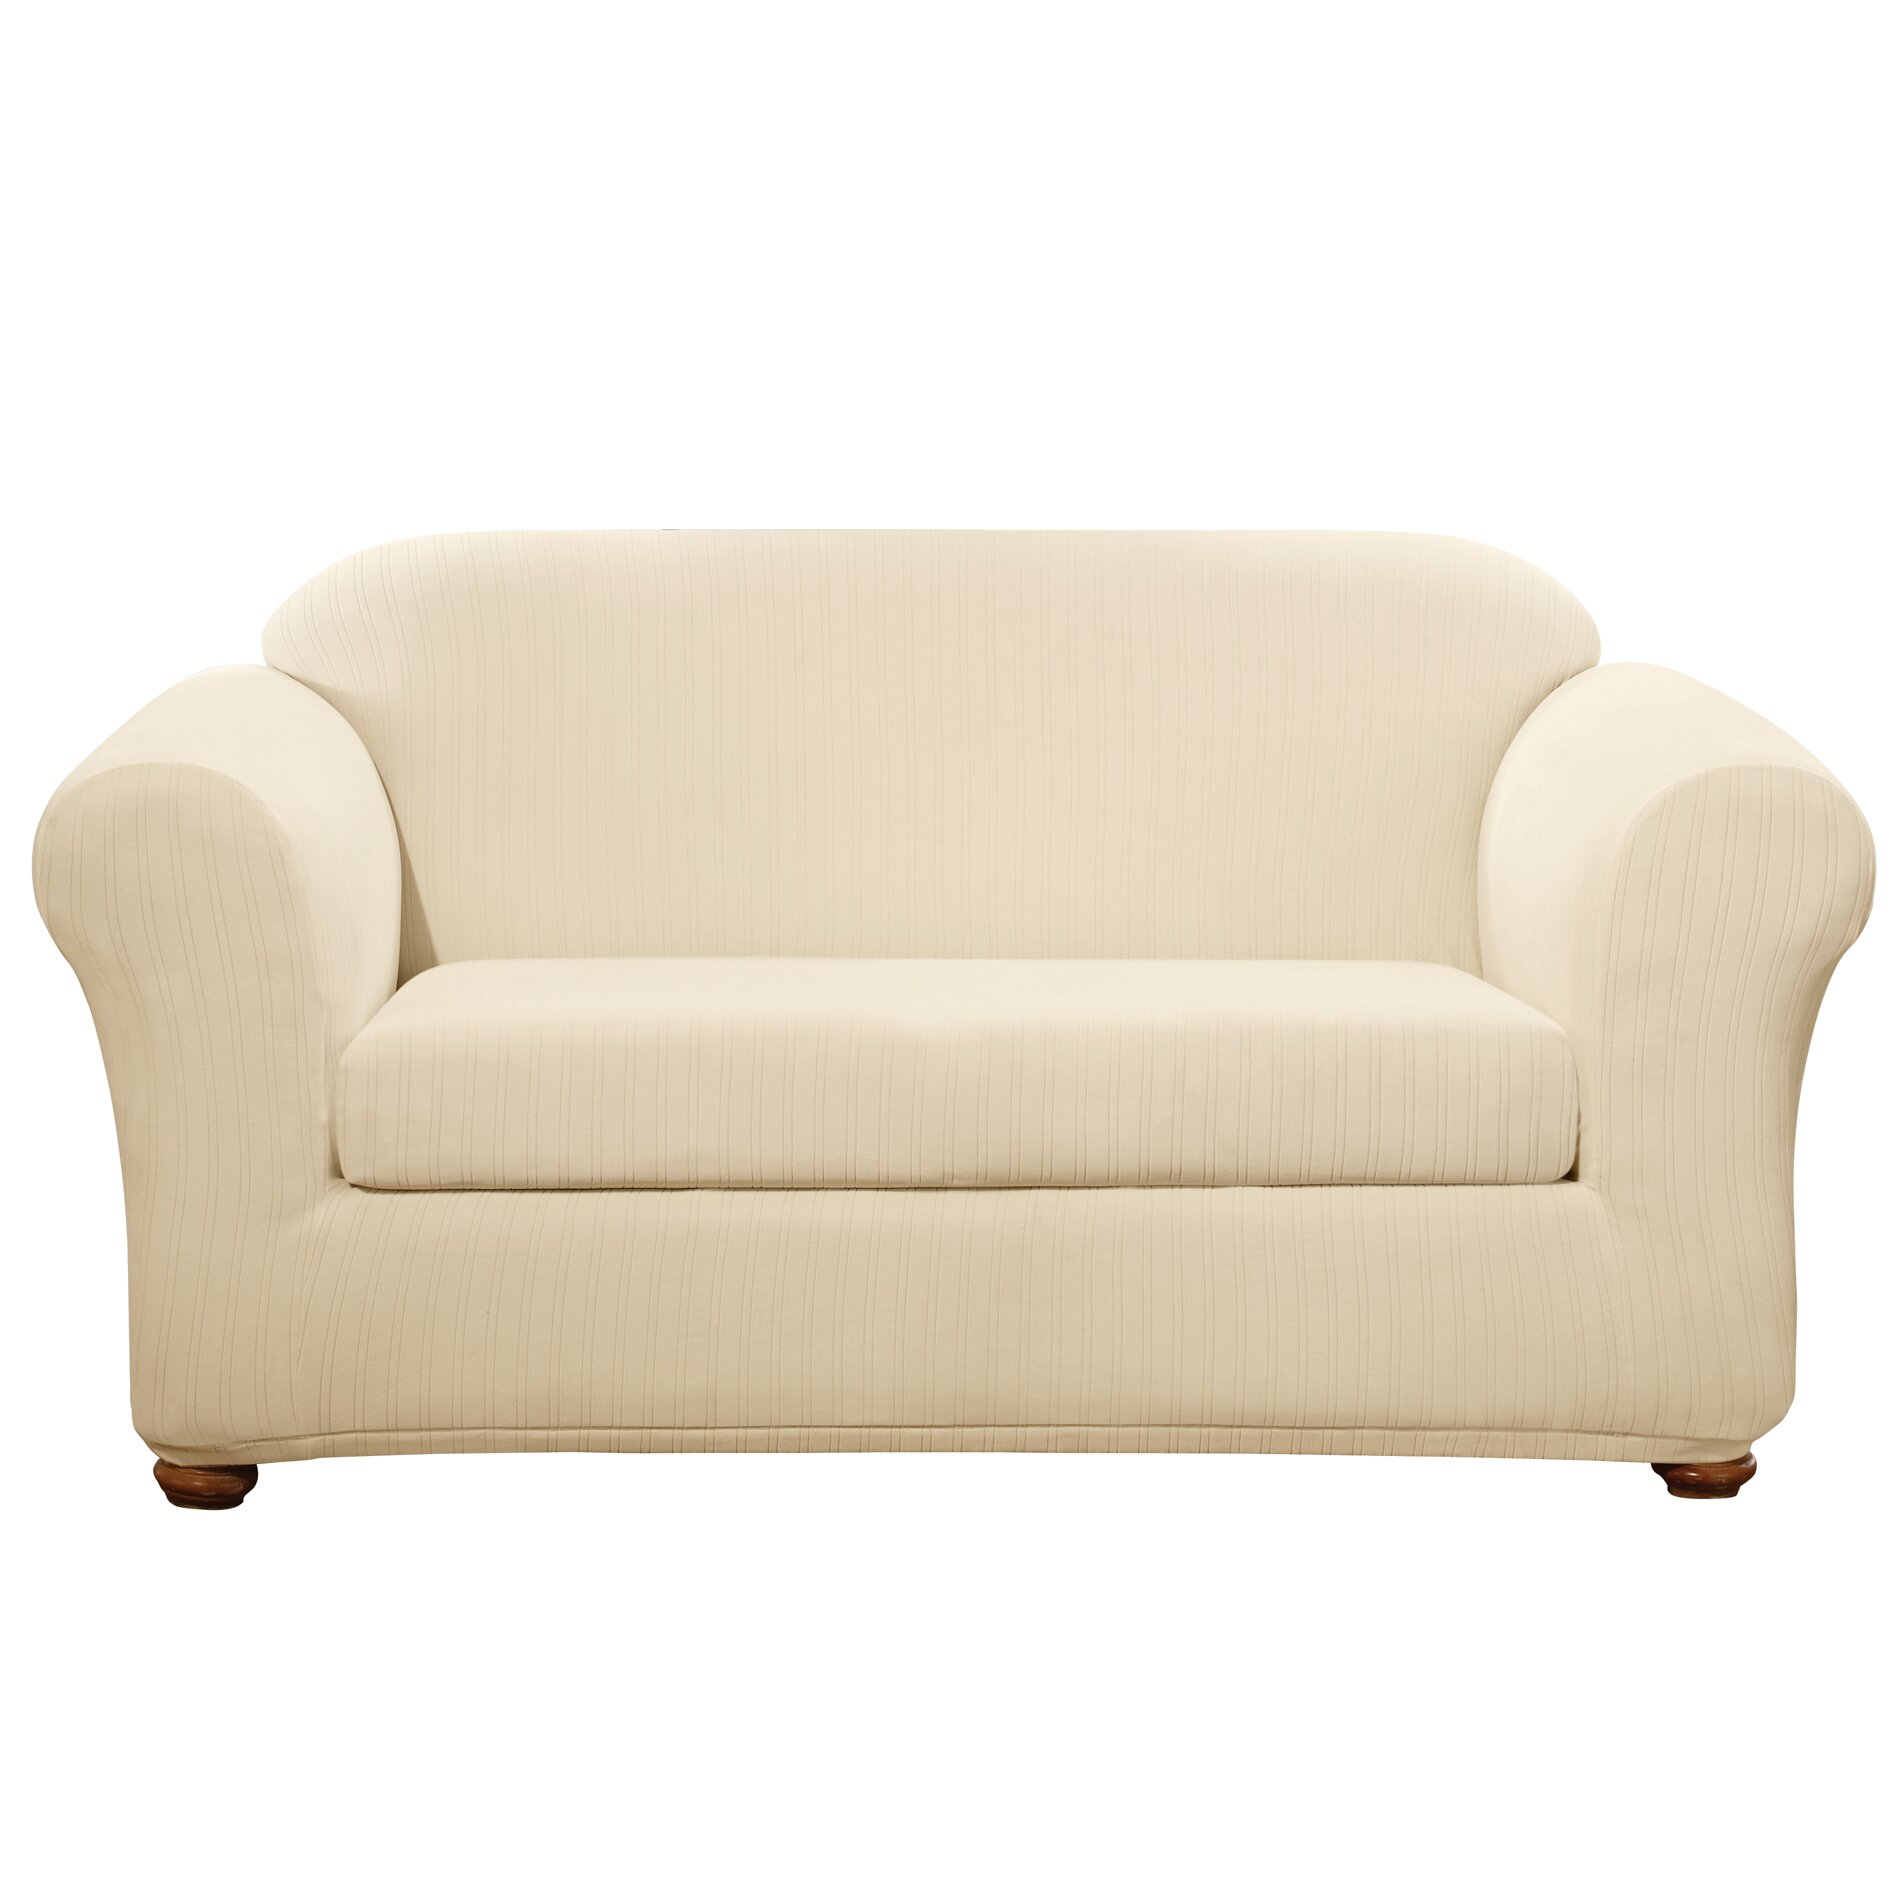 Sure fit stretch pinstripe loveseat slipcover reviews wayfair Cover for loveseat